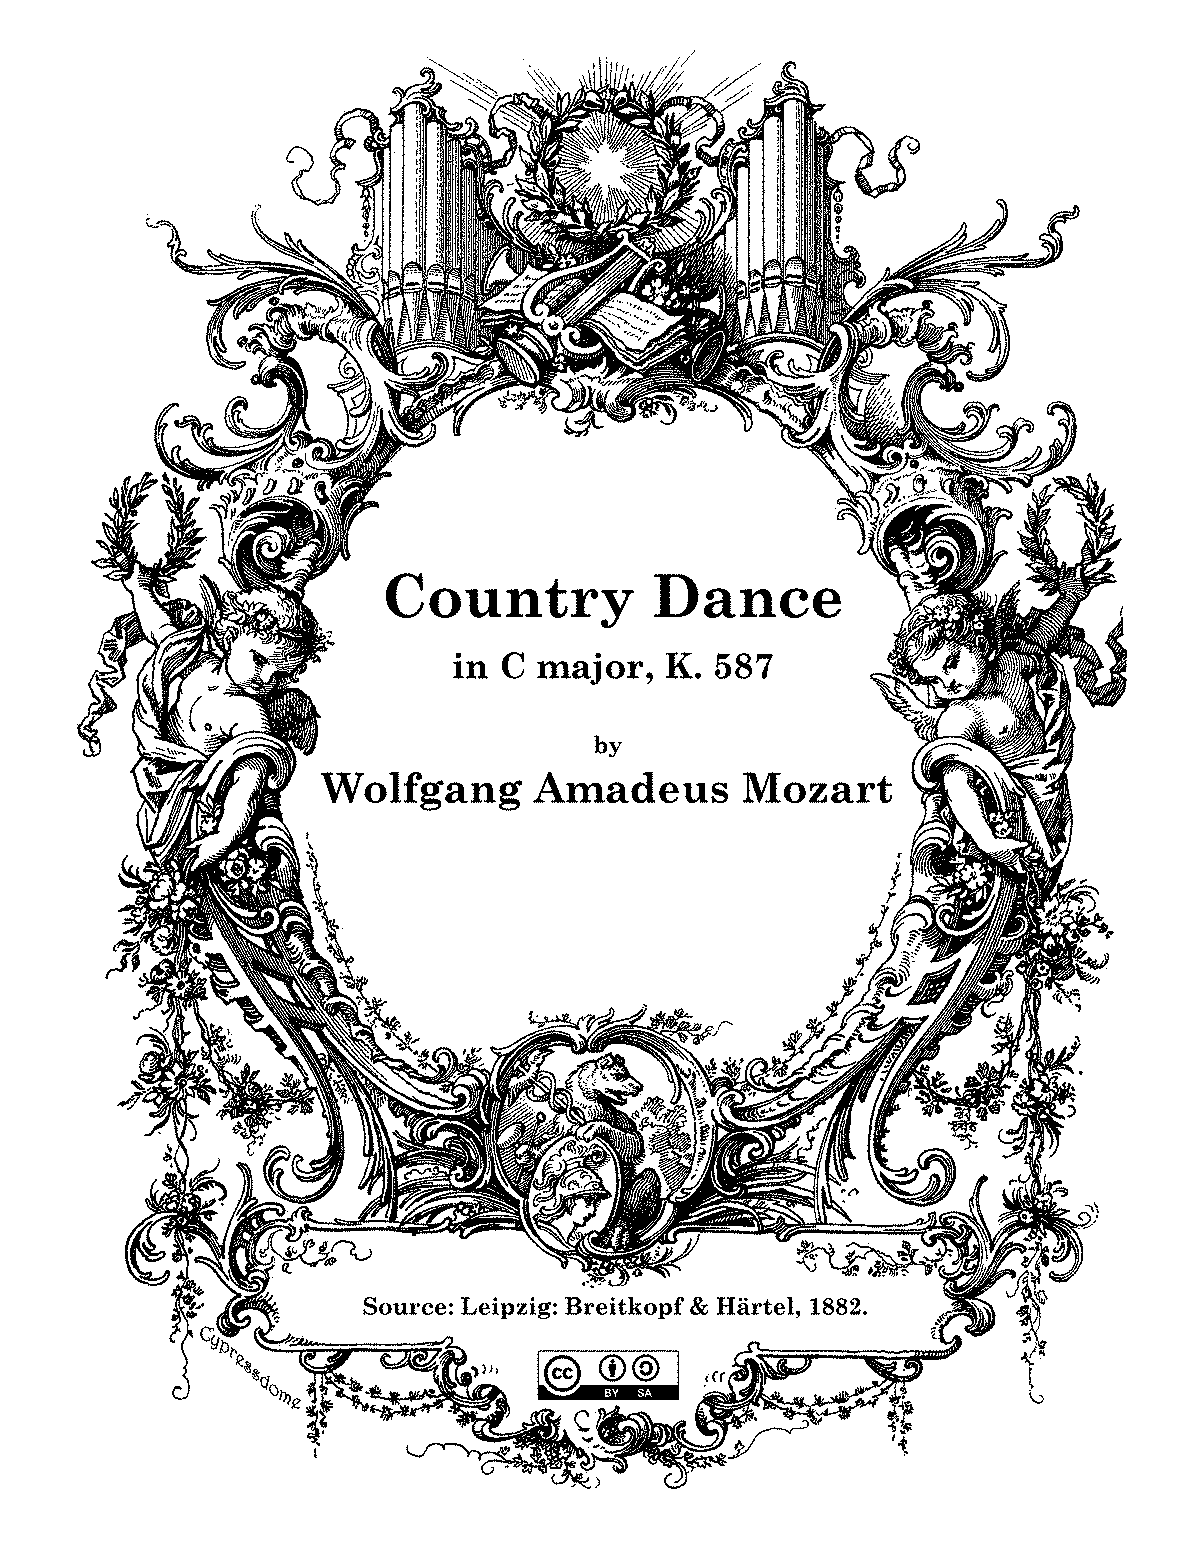 PMLP160418-WAMozart Country Dance in C major, K.587 parts.pdf